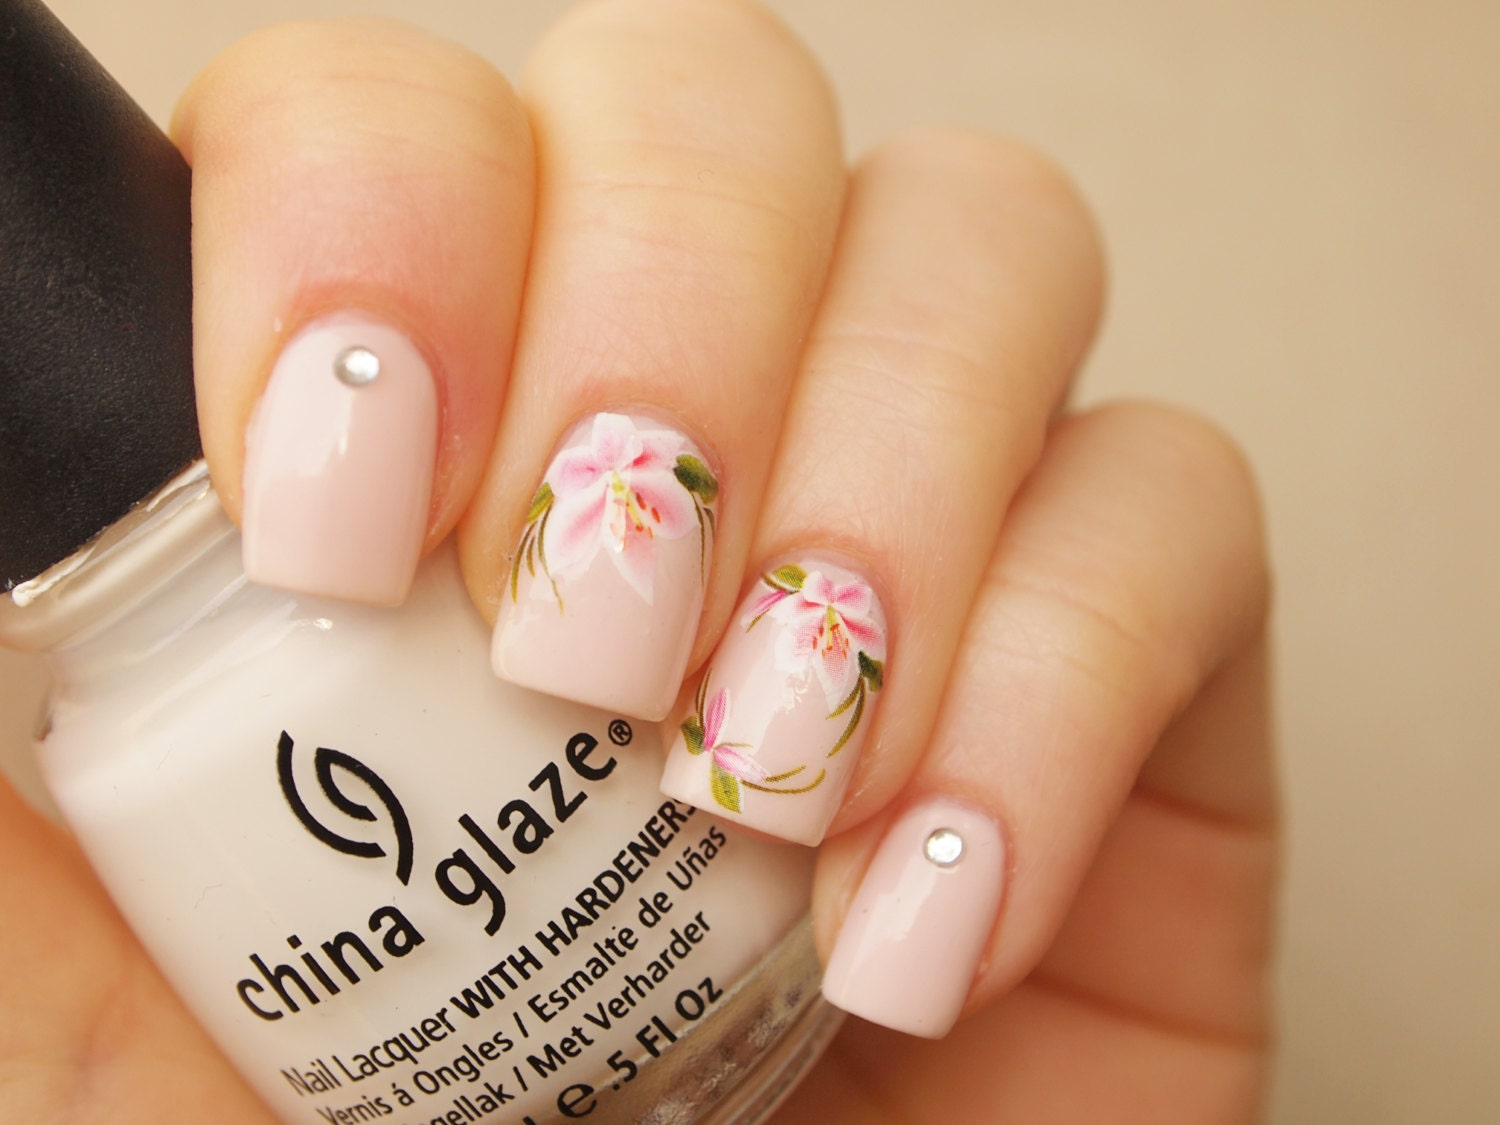 White pink lily nail art water decals/ 20pcs floral nail art decals ...